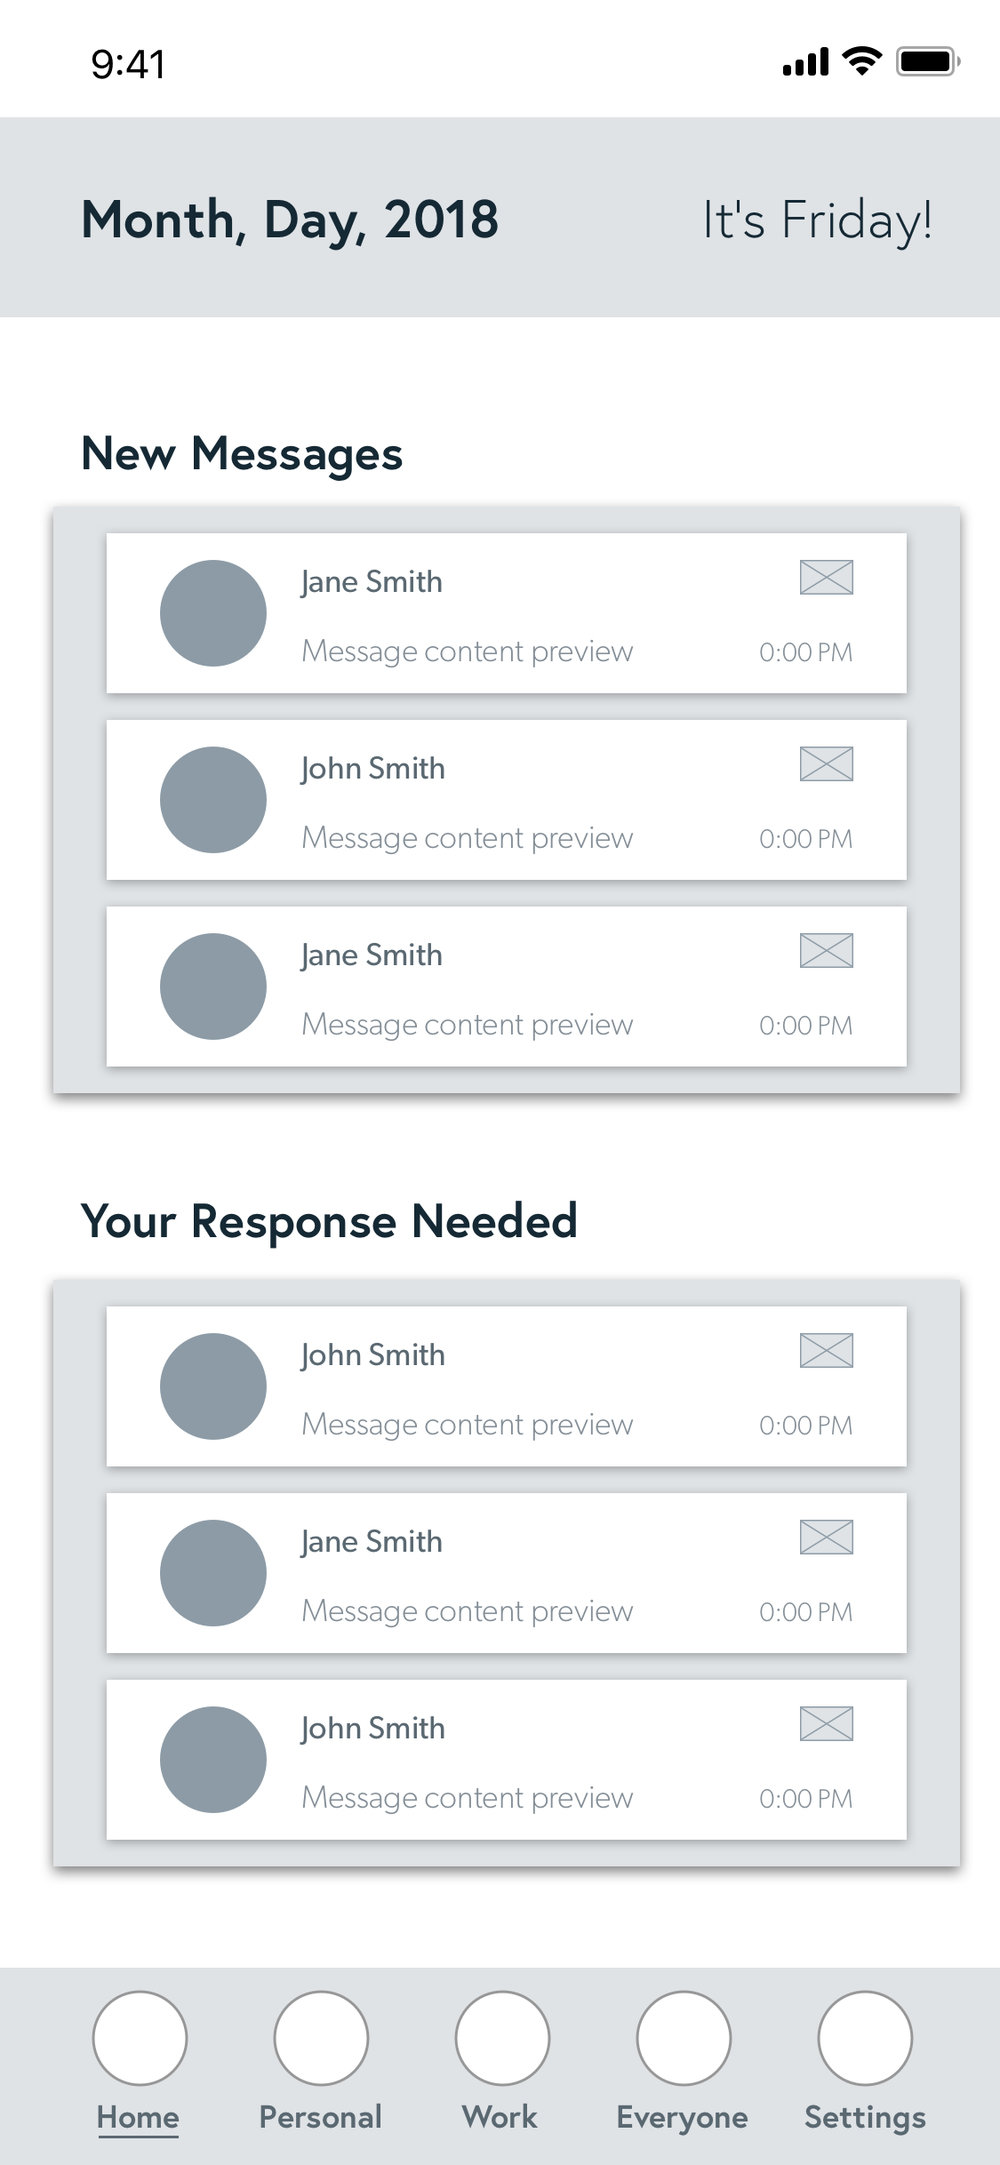 The ' Home ' tab where the new and unresponded messages are separated.